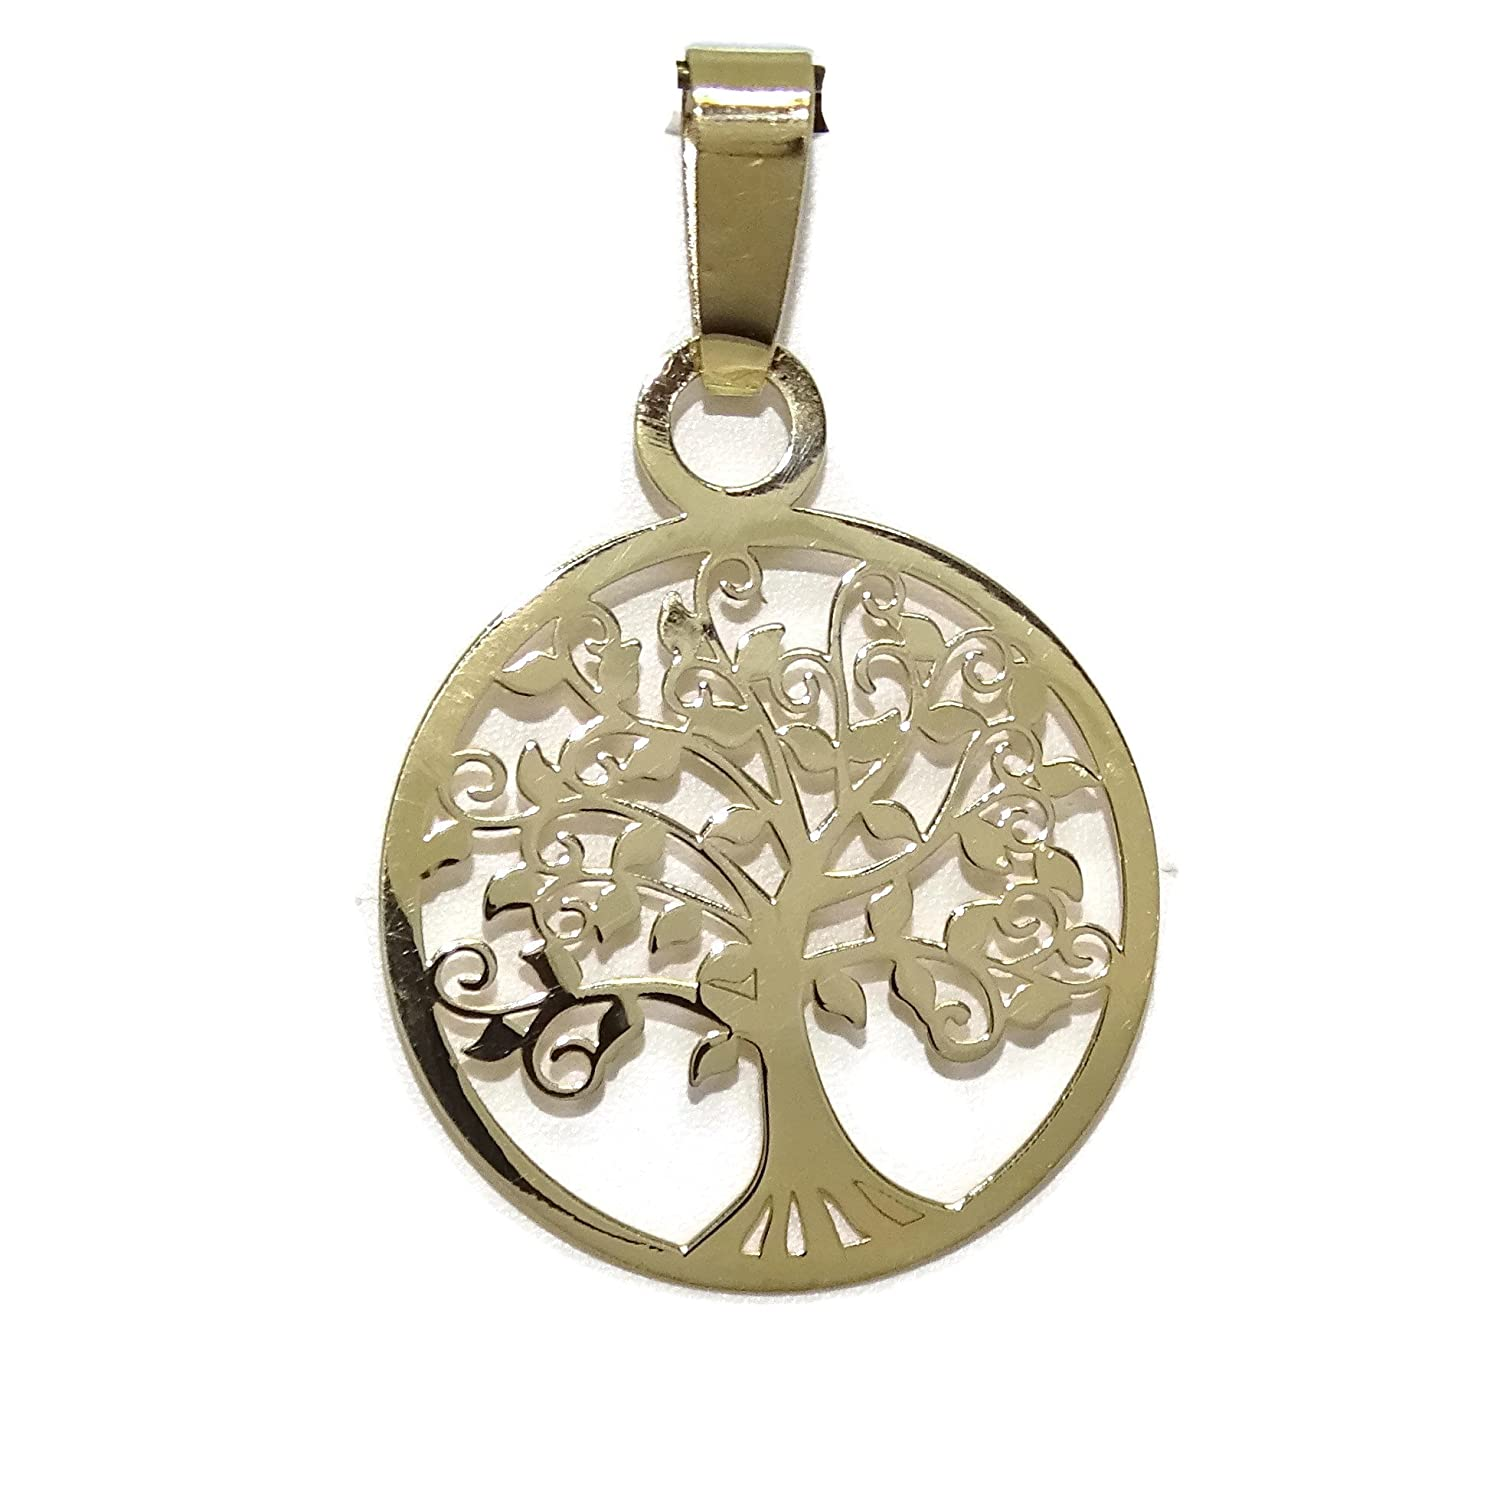 Never Say Never Yellow Gold Pendant With Tree Of Life of 2.00cm díametro. Flat